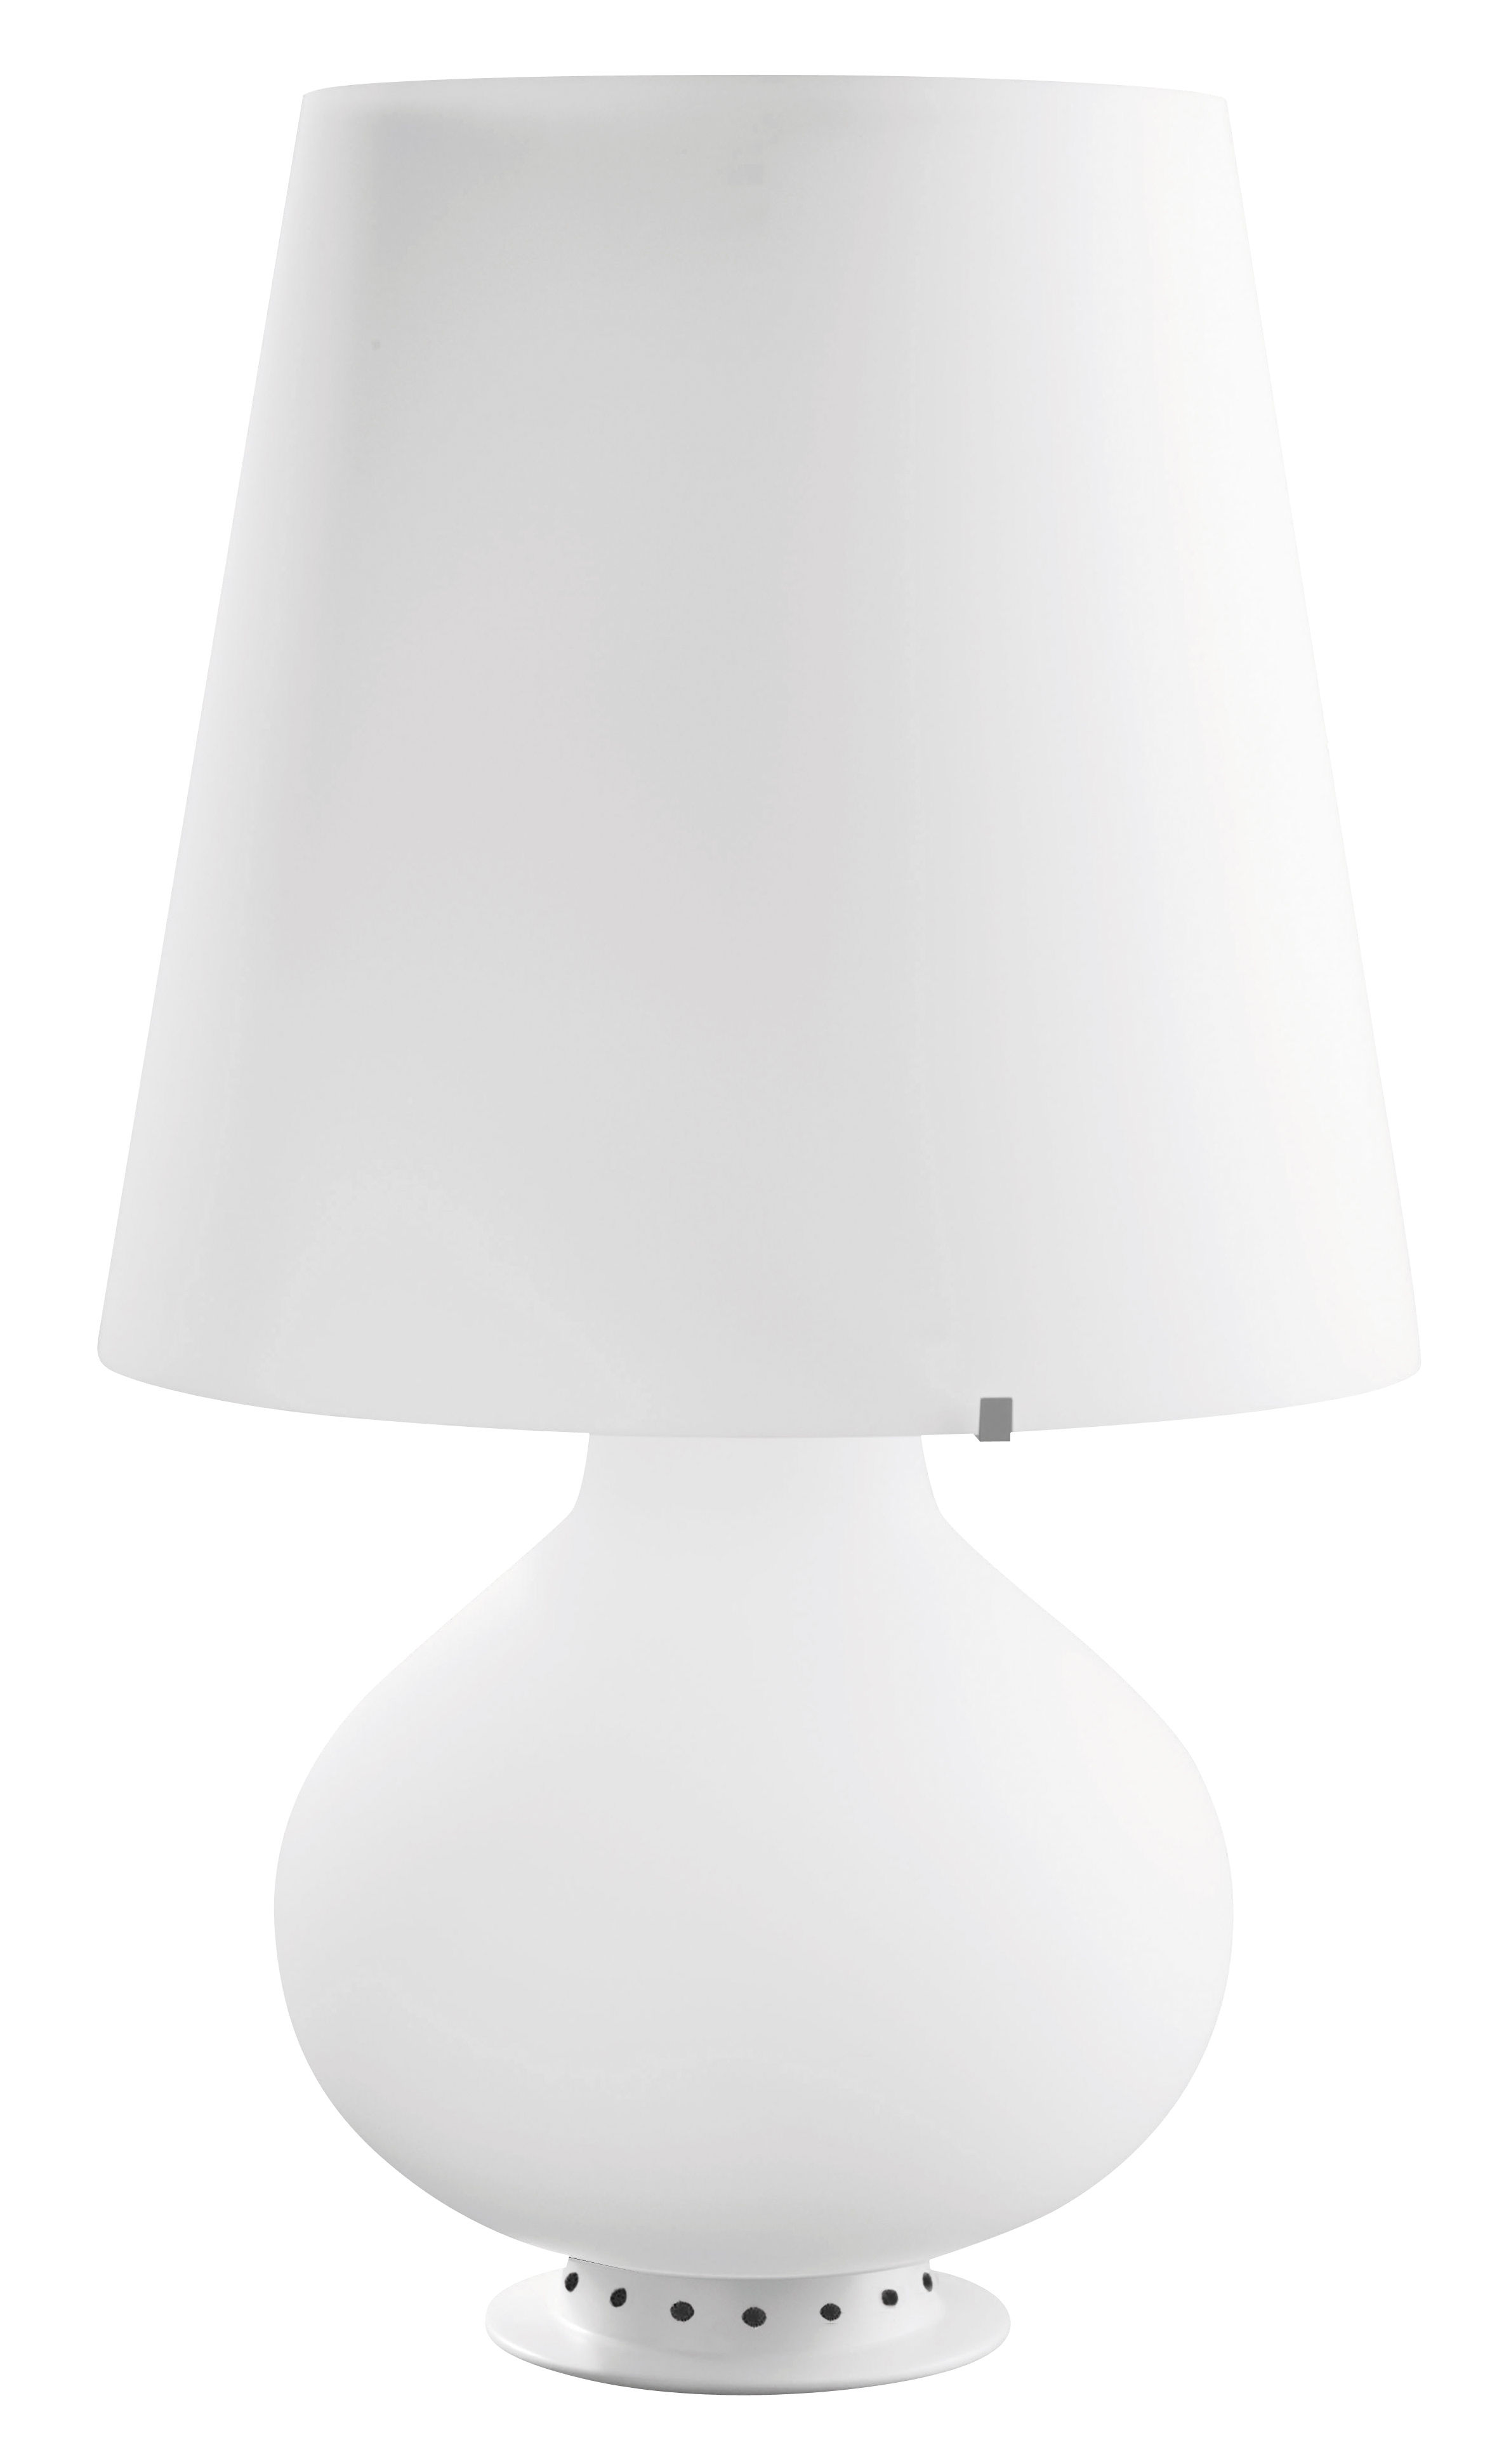 Lighting - Table Lamps - Fontana Lamp by Fontana Arte - H 78 cm - Blown glass, Metal